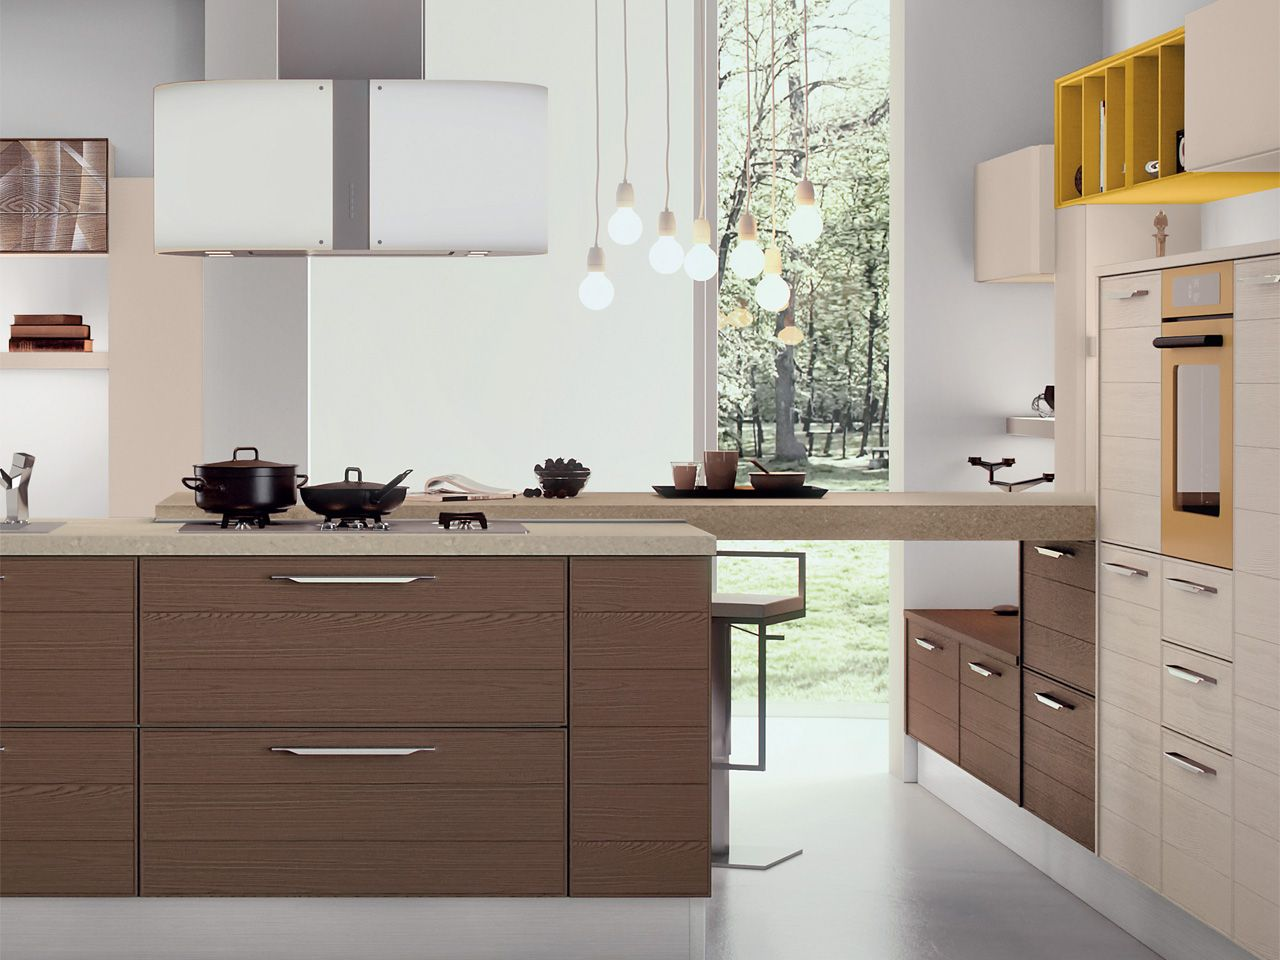 ADELE Project - Cucina Lube Moderna | Pinterest | Adele and Kitchens